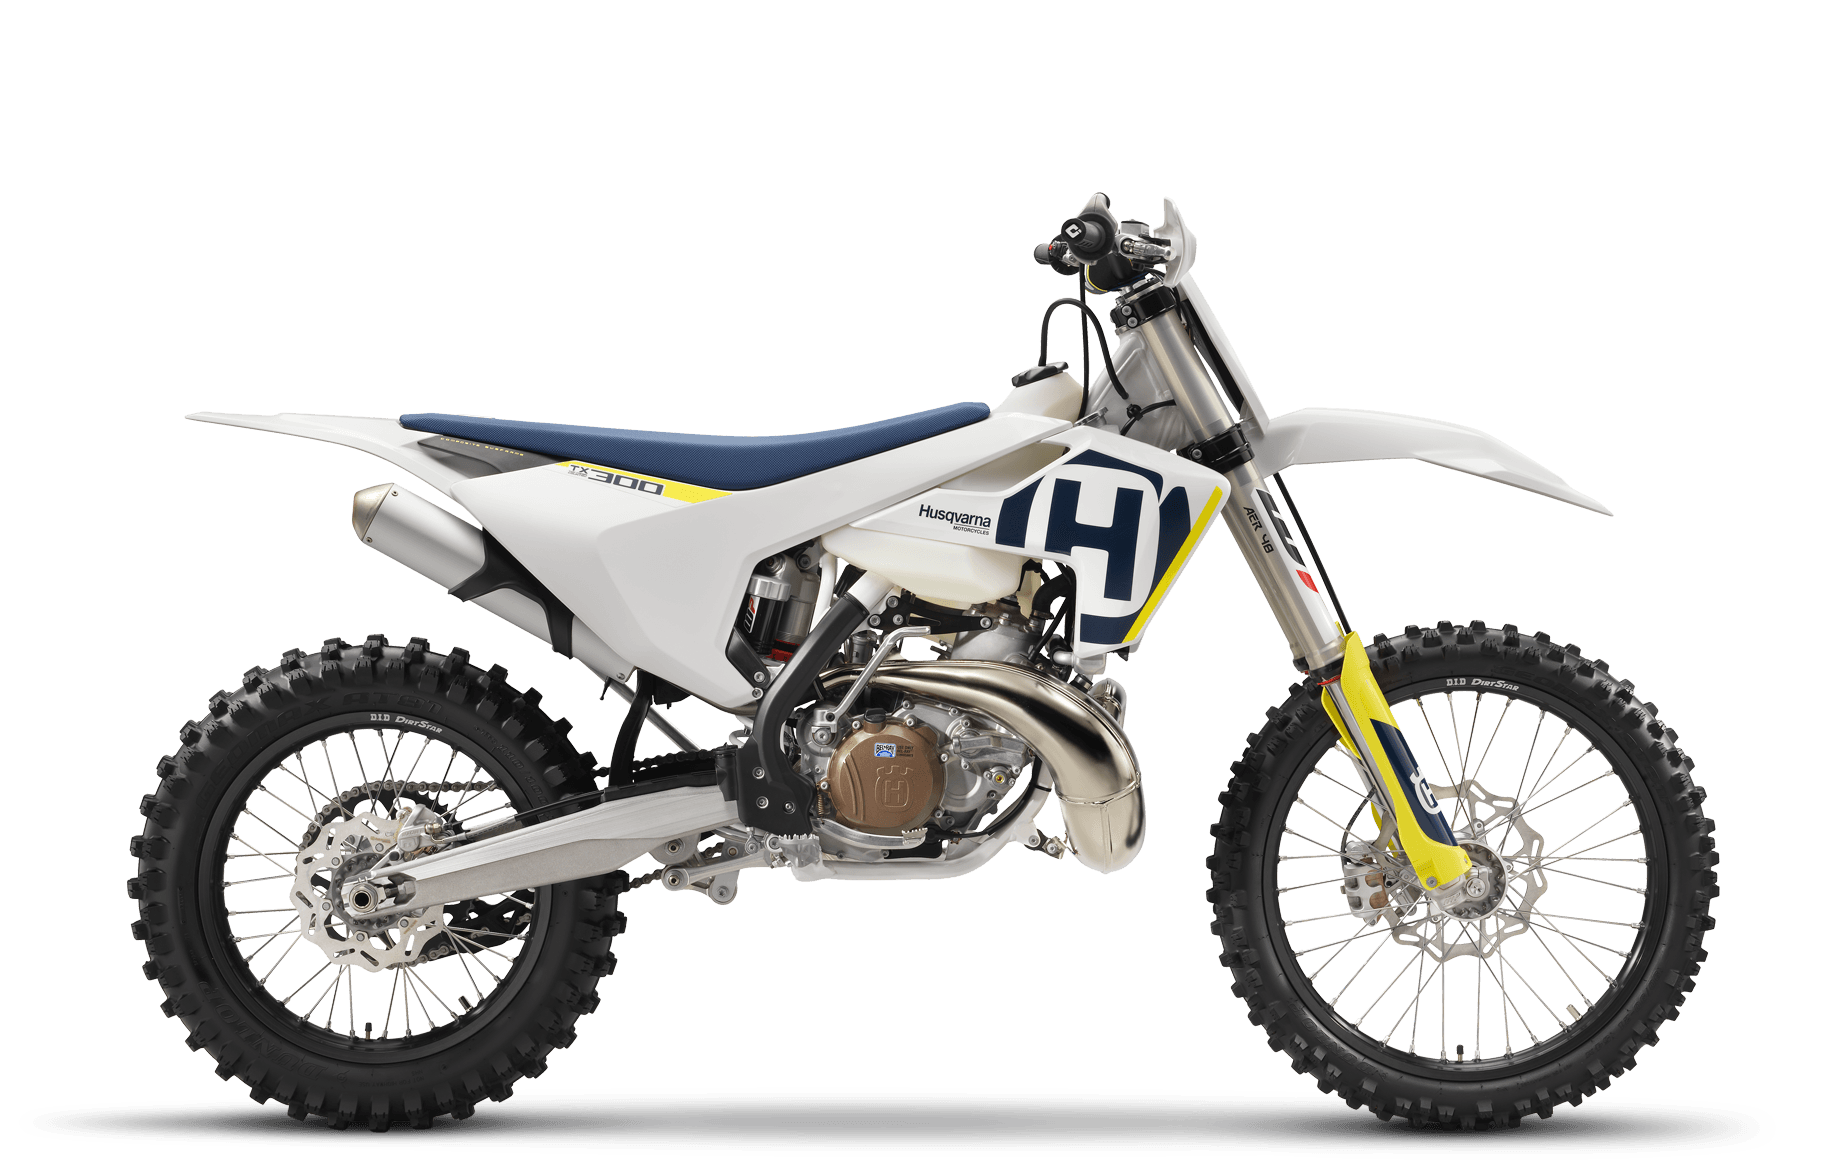 2018 Husqvarna TX 300 in Castaic, California